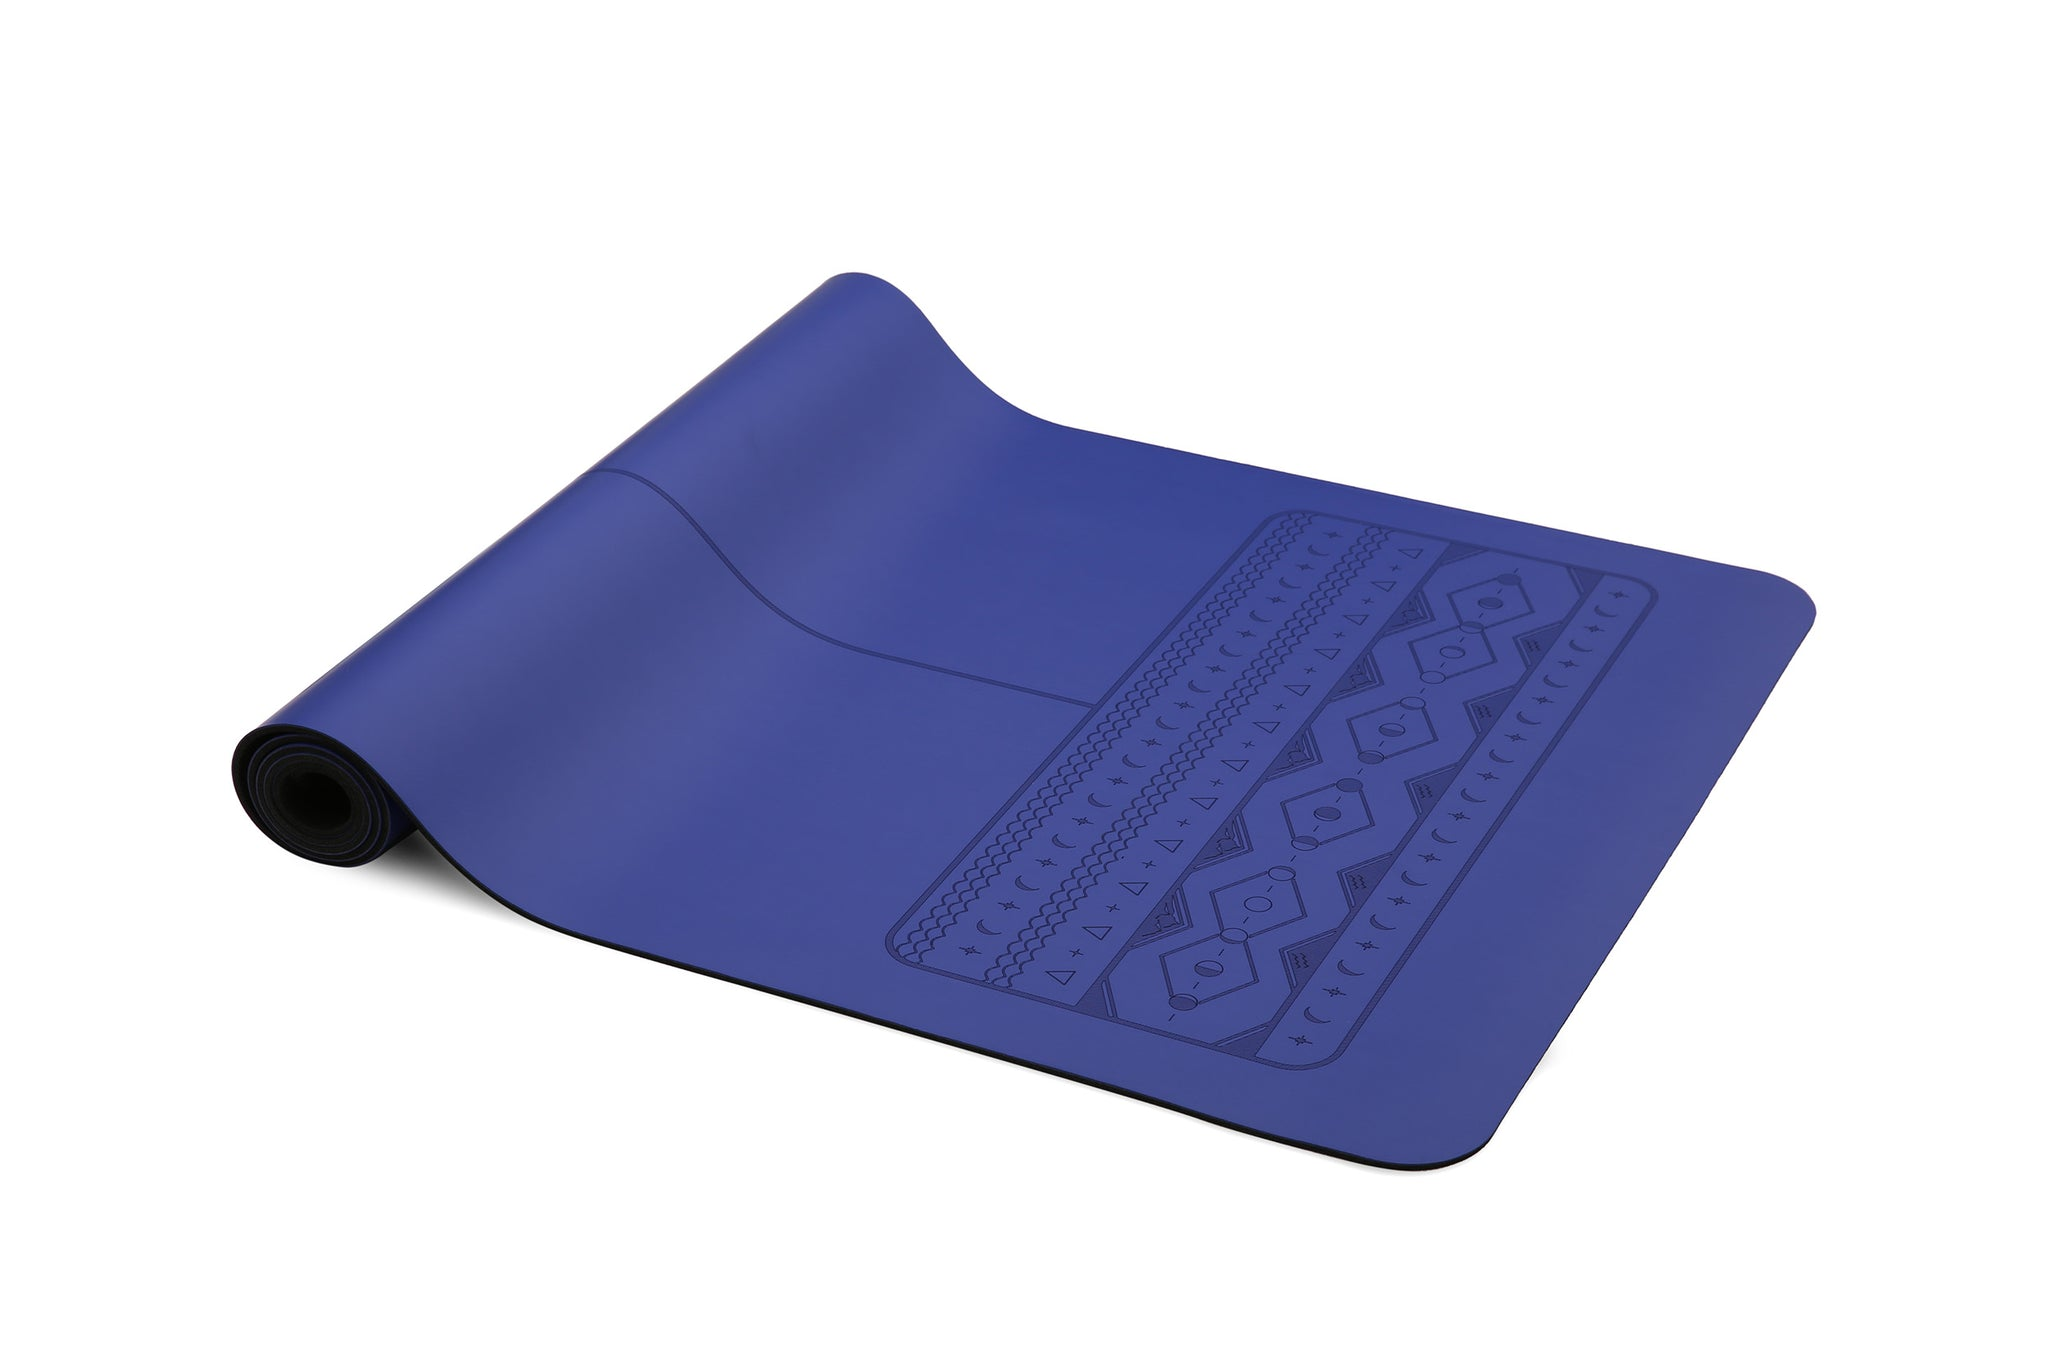 Lunar Paws - Natural rubber extreme grip yoga mat - Blue